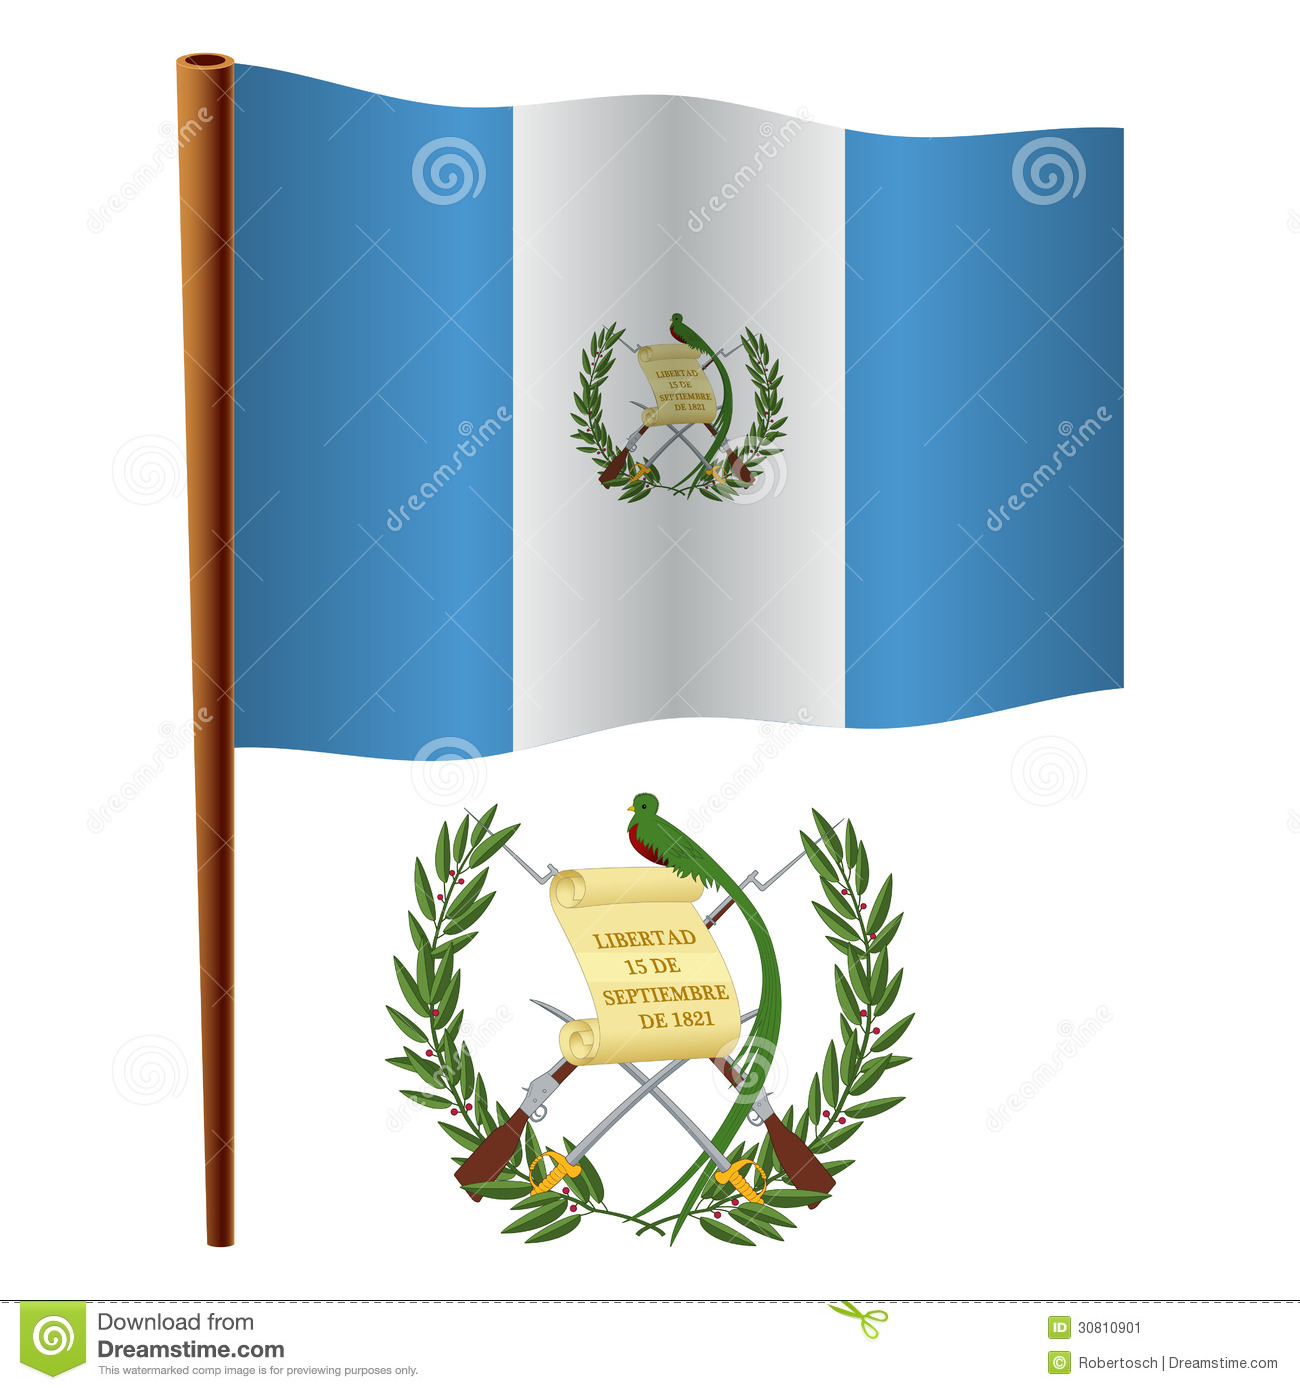 Escudo Y Bandera De Guatemala Pictures to Pin on Pinterest - ThePinsta